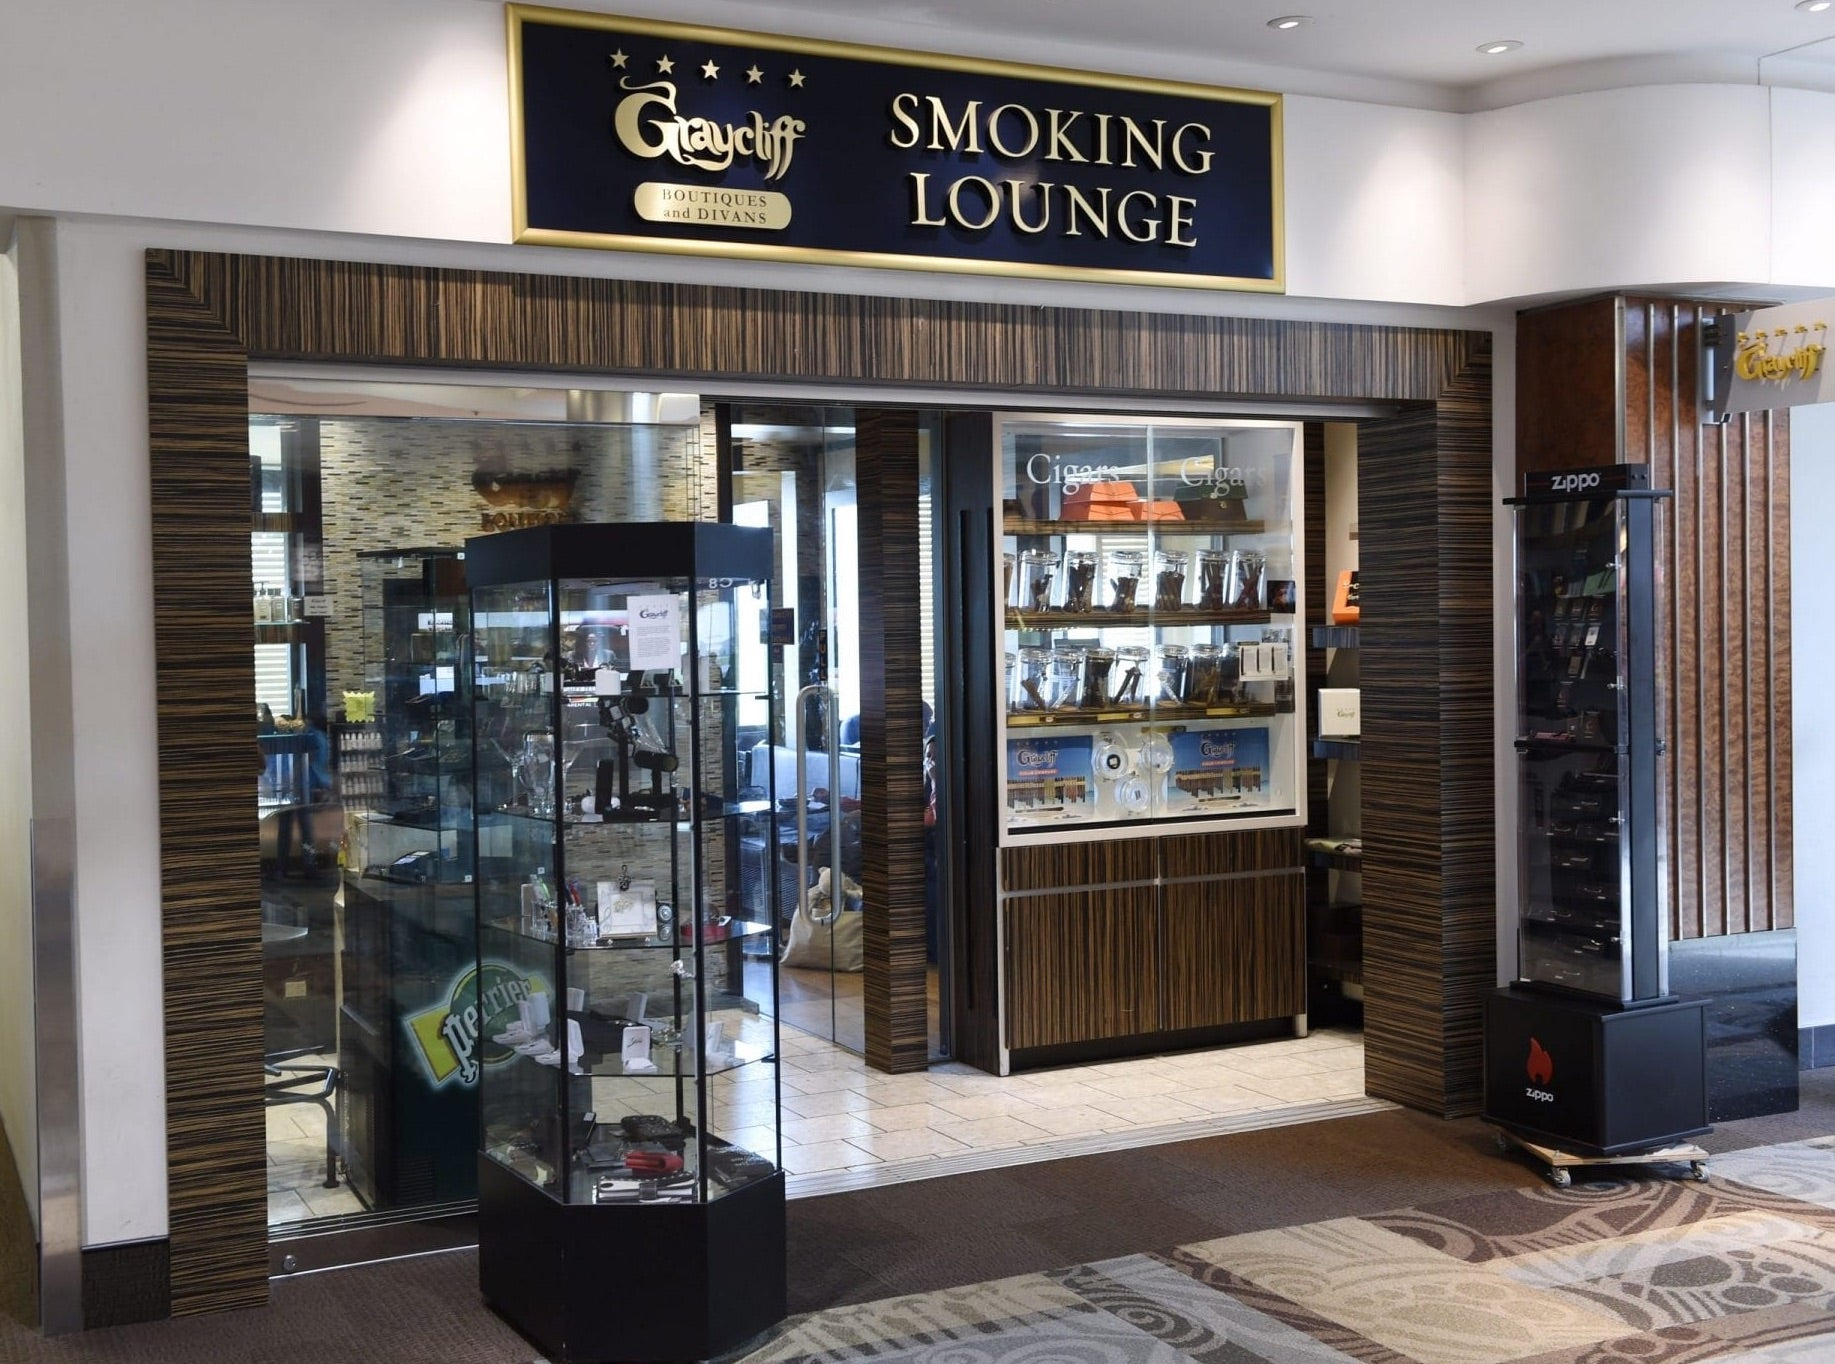 Best Airport Smoking Lounges US